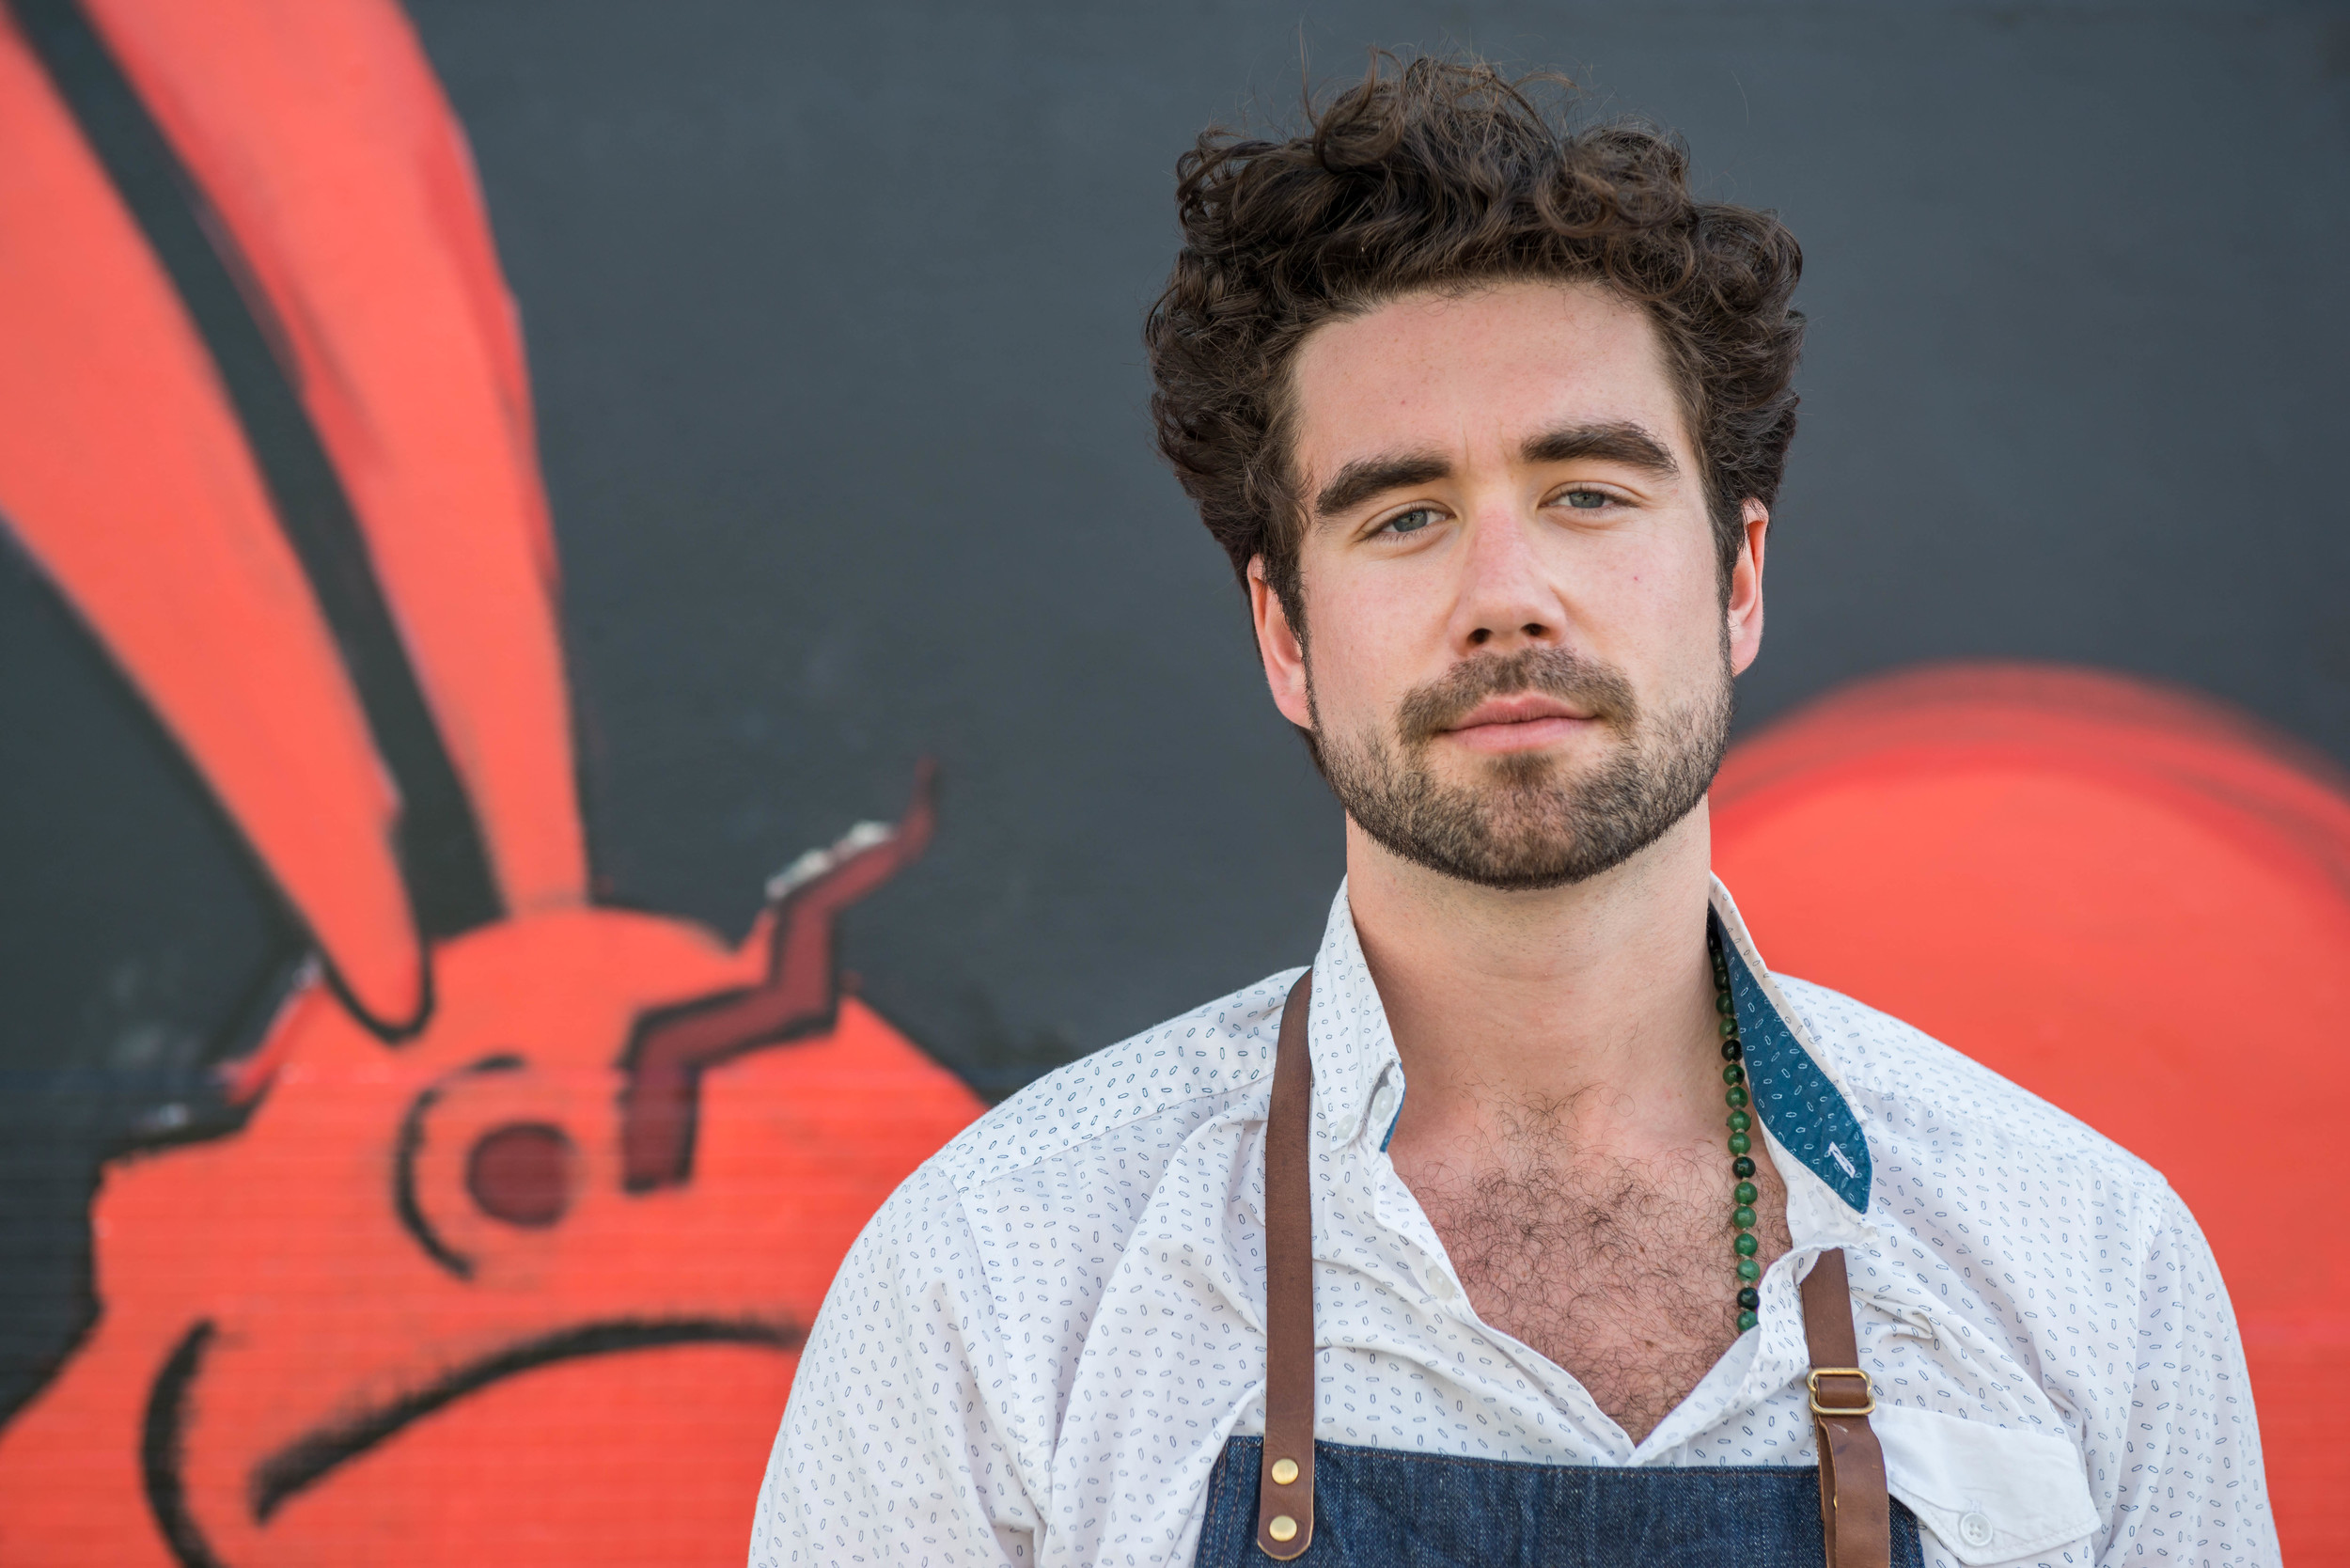 Get To Know The Winner Of The Taste Chef Gabe Kennedy